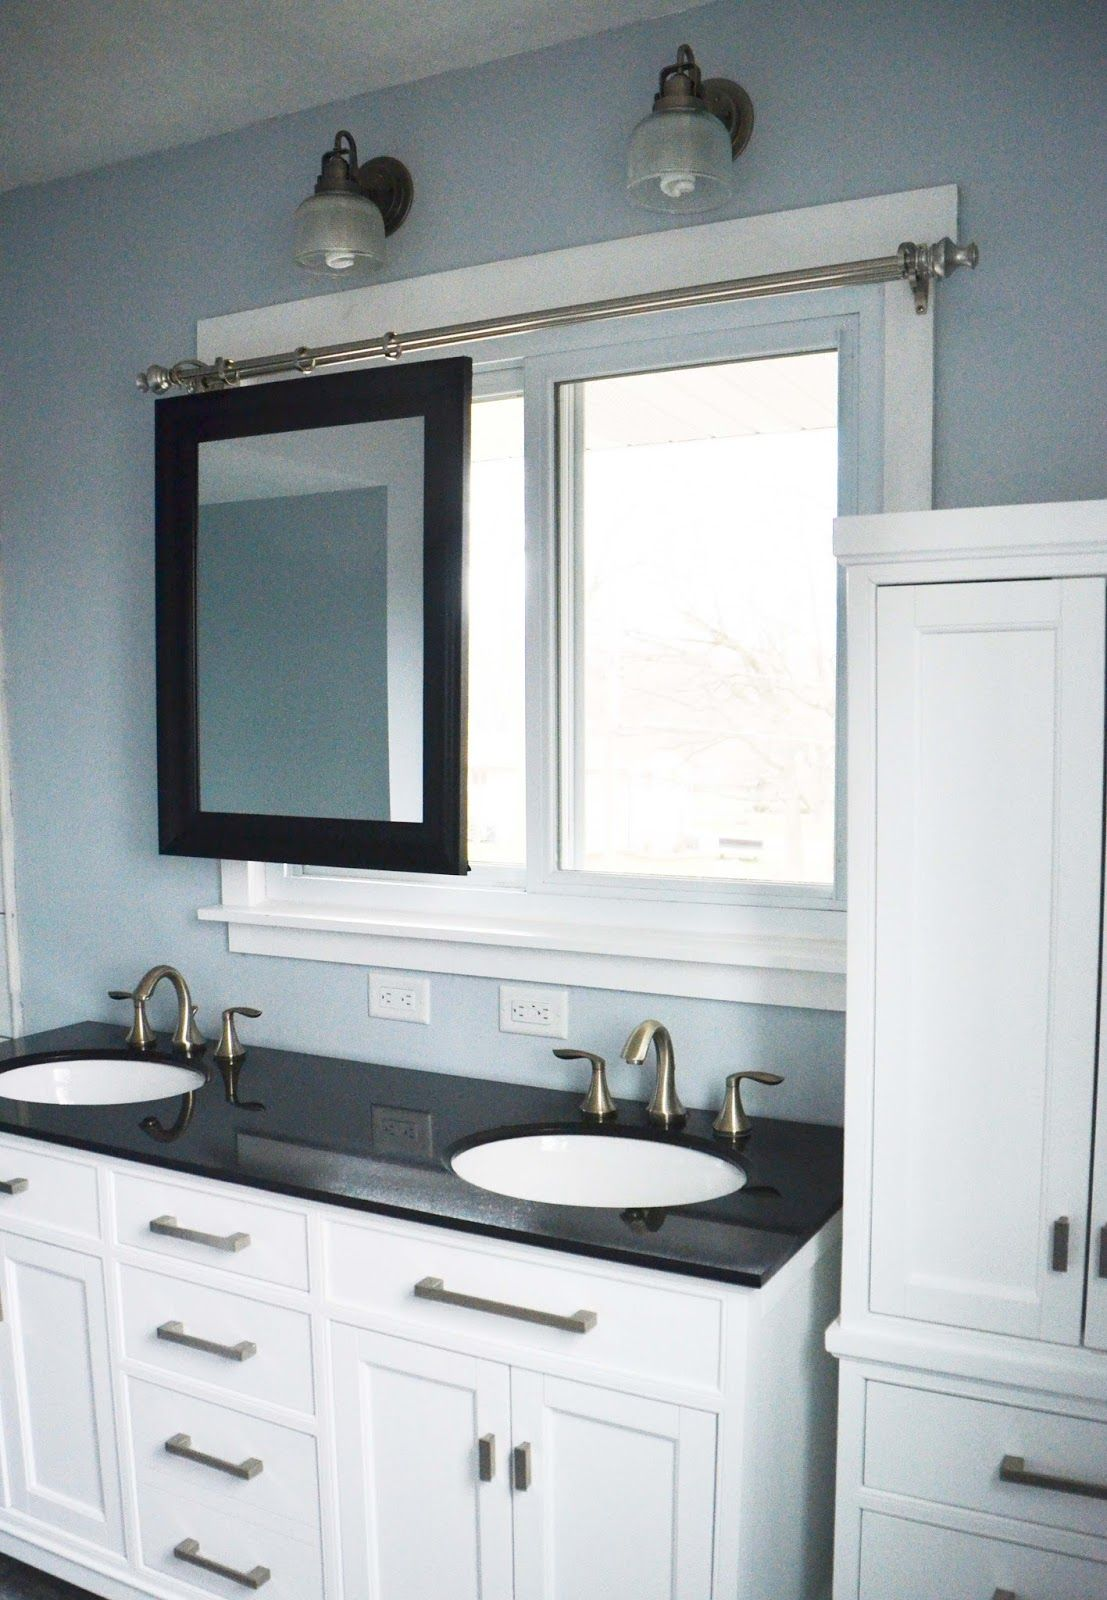 19 Bathroom Renovation With Movable Mirror By Since I Became A Mom